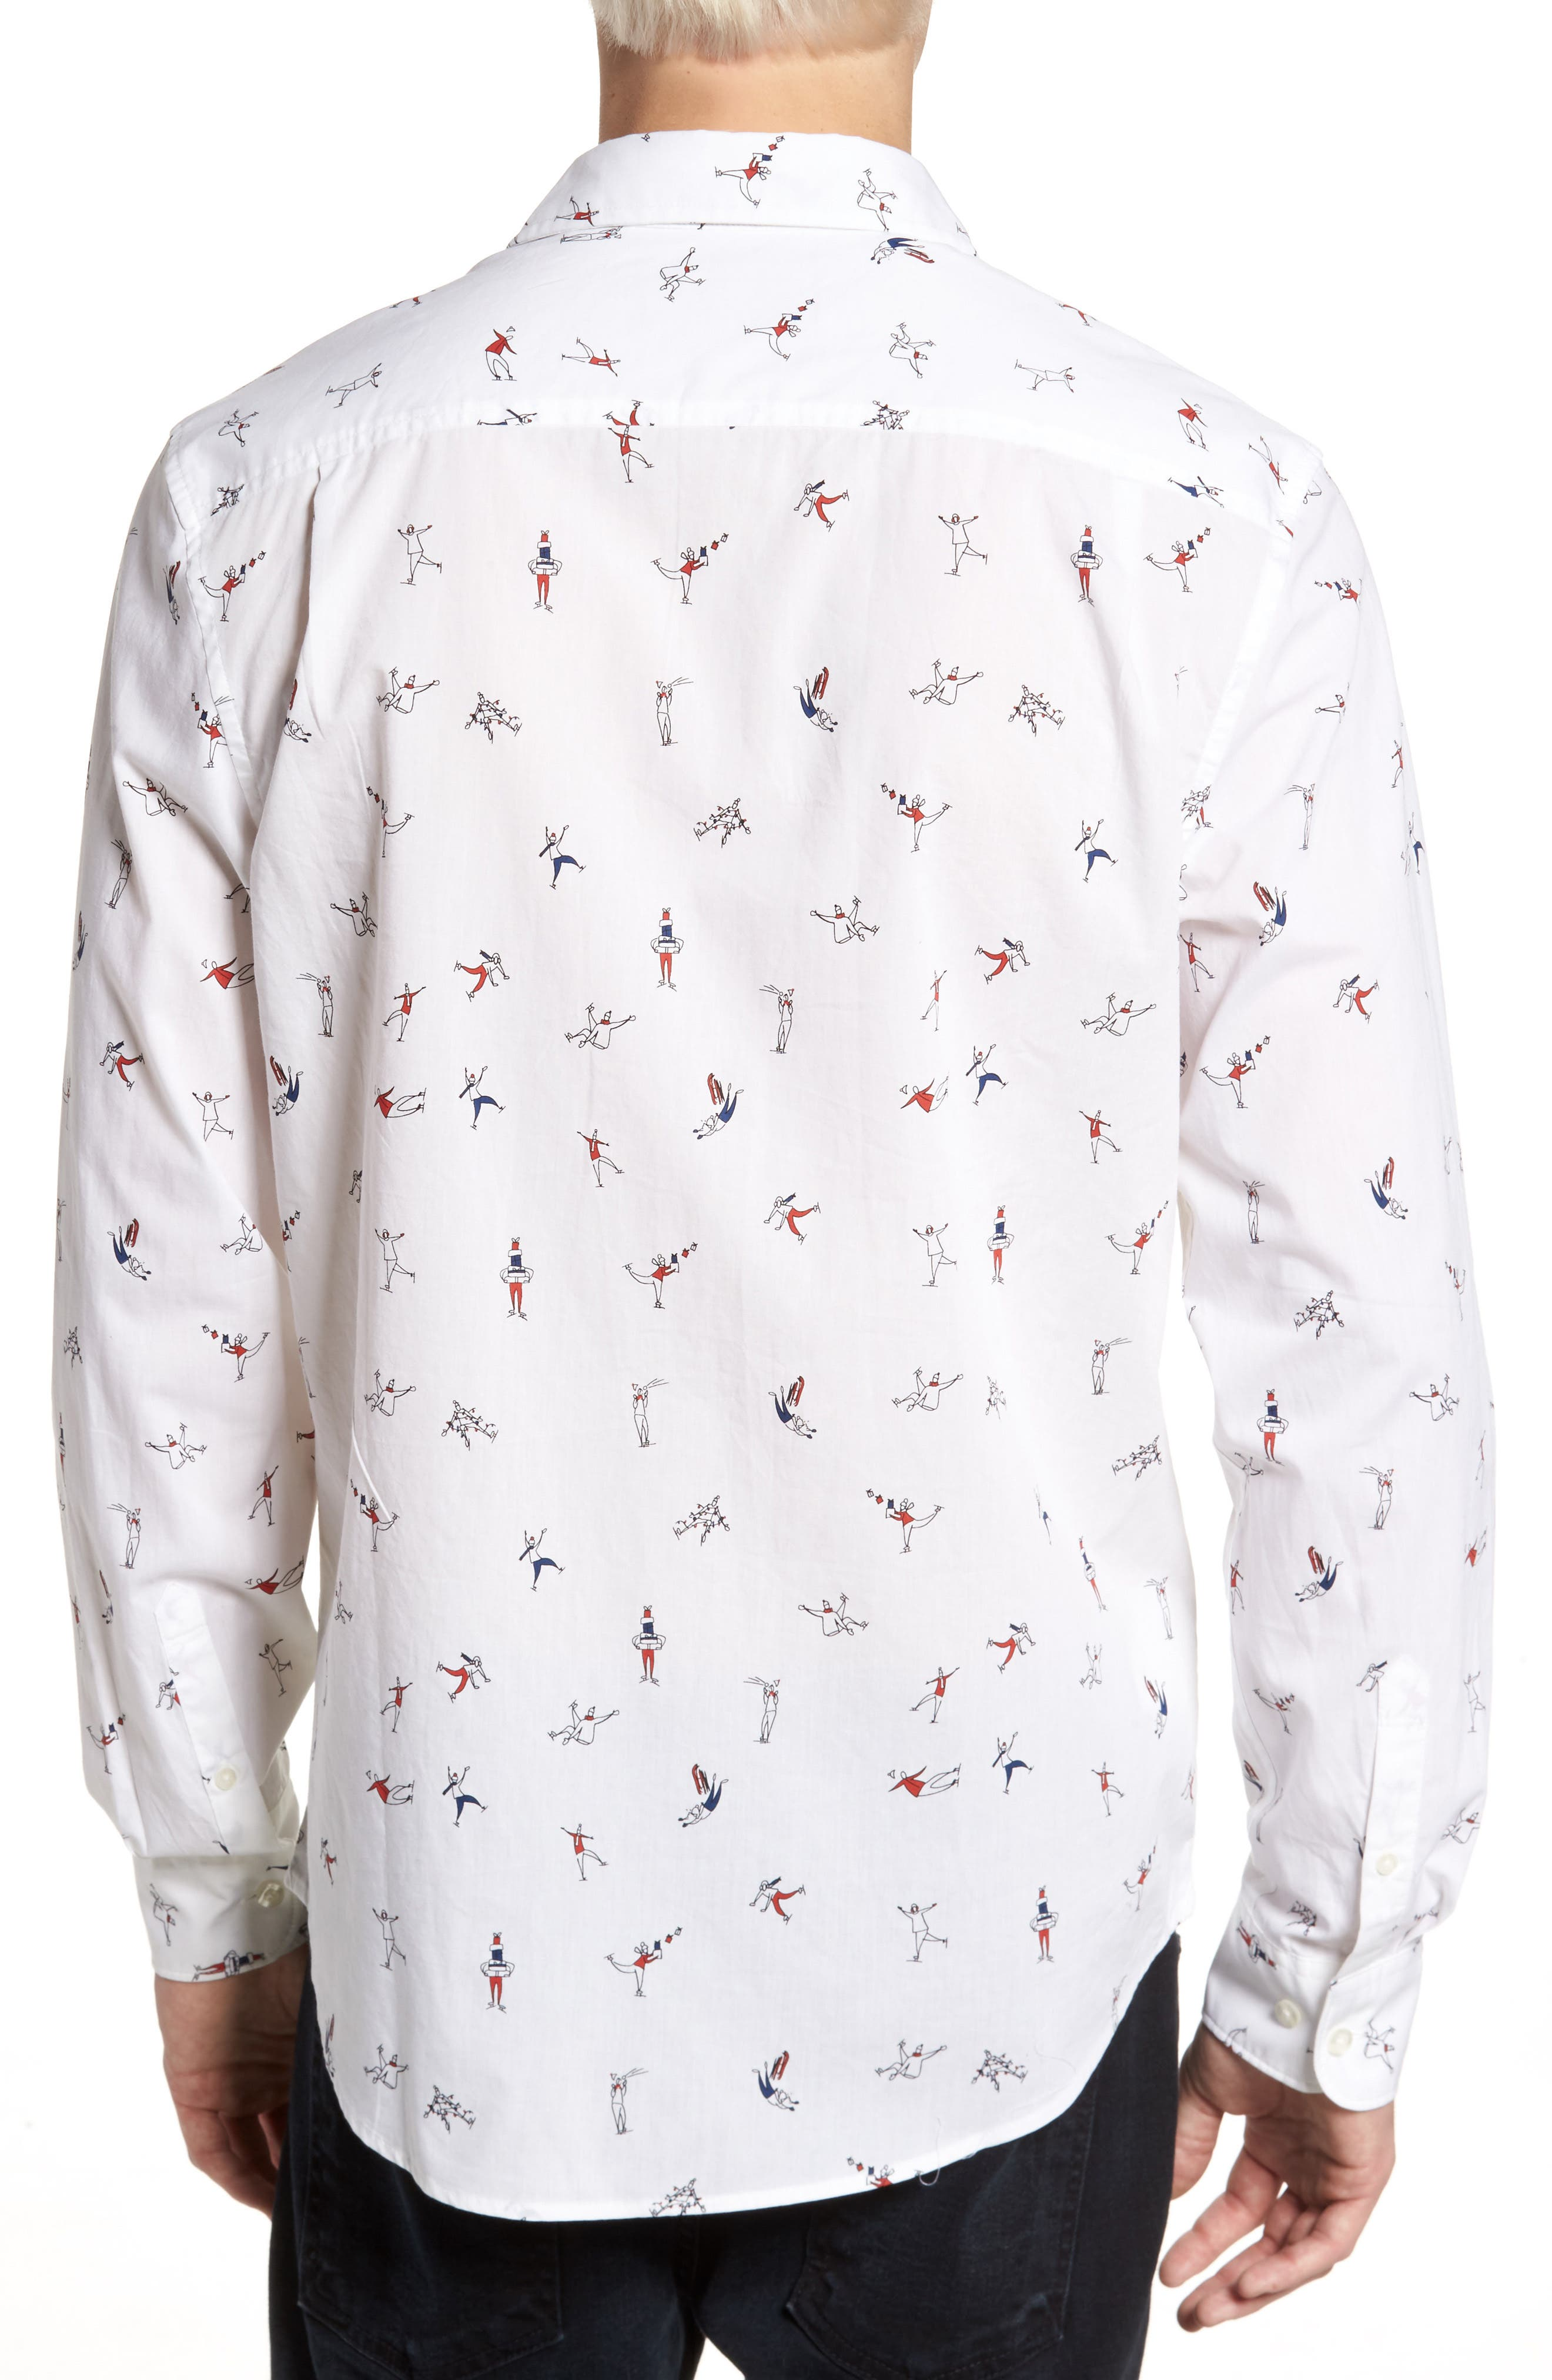 Clumsy Skaters Poplin Shirt,                             Alternate thumbnail 2, color,                             Bright White